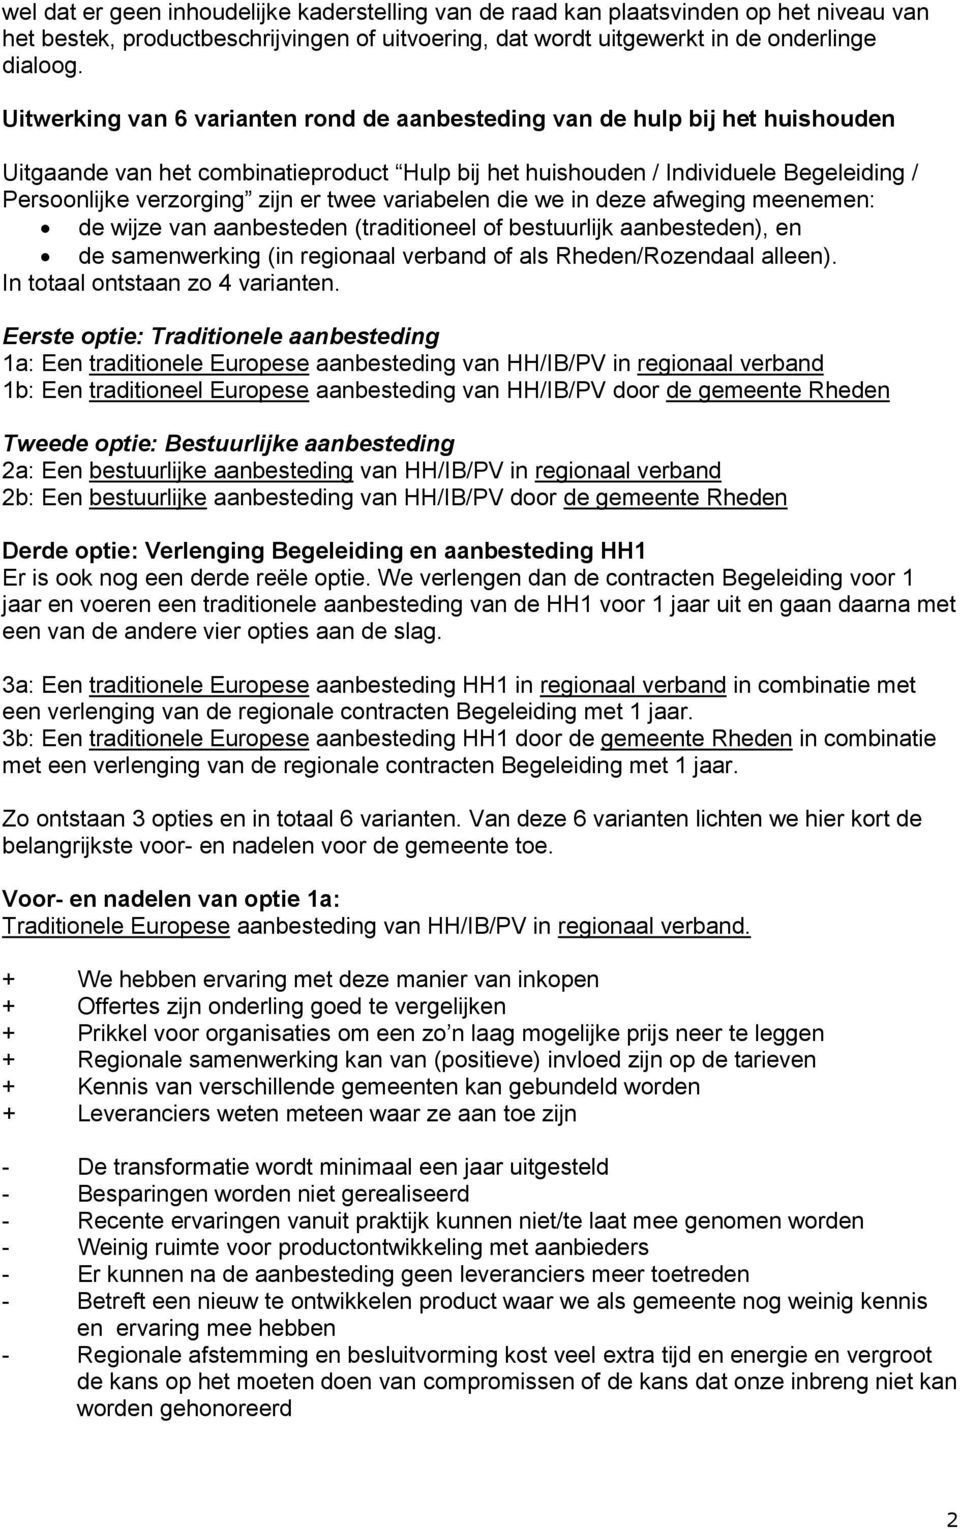 contract europese aanbesteding